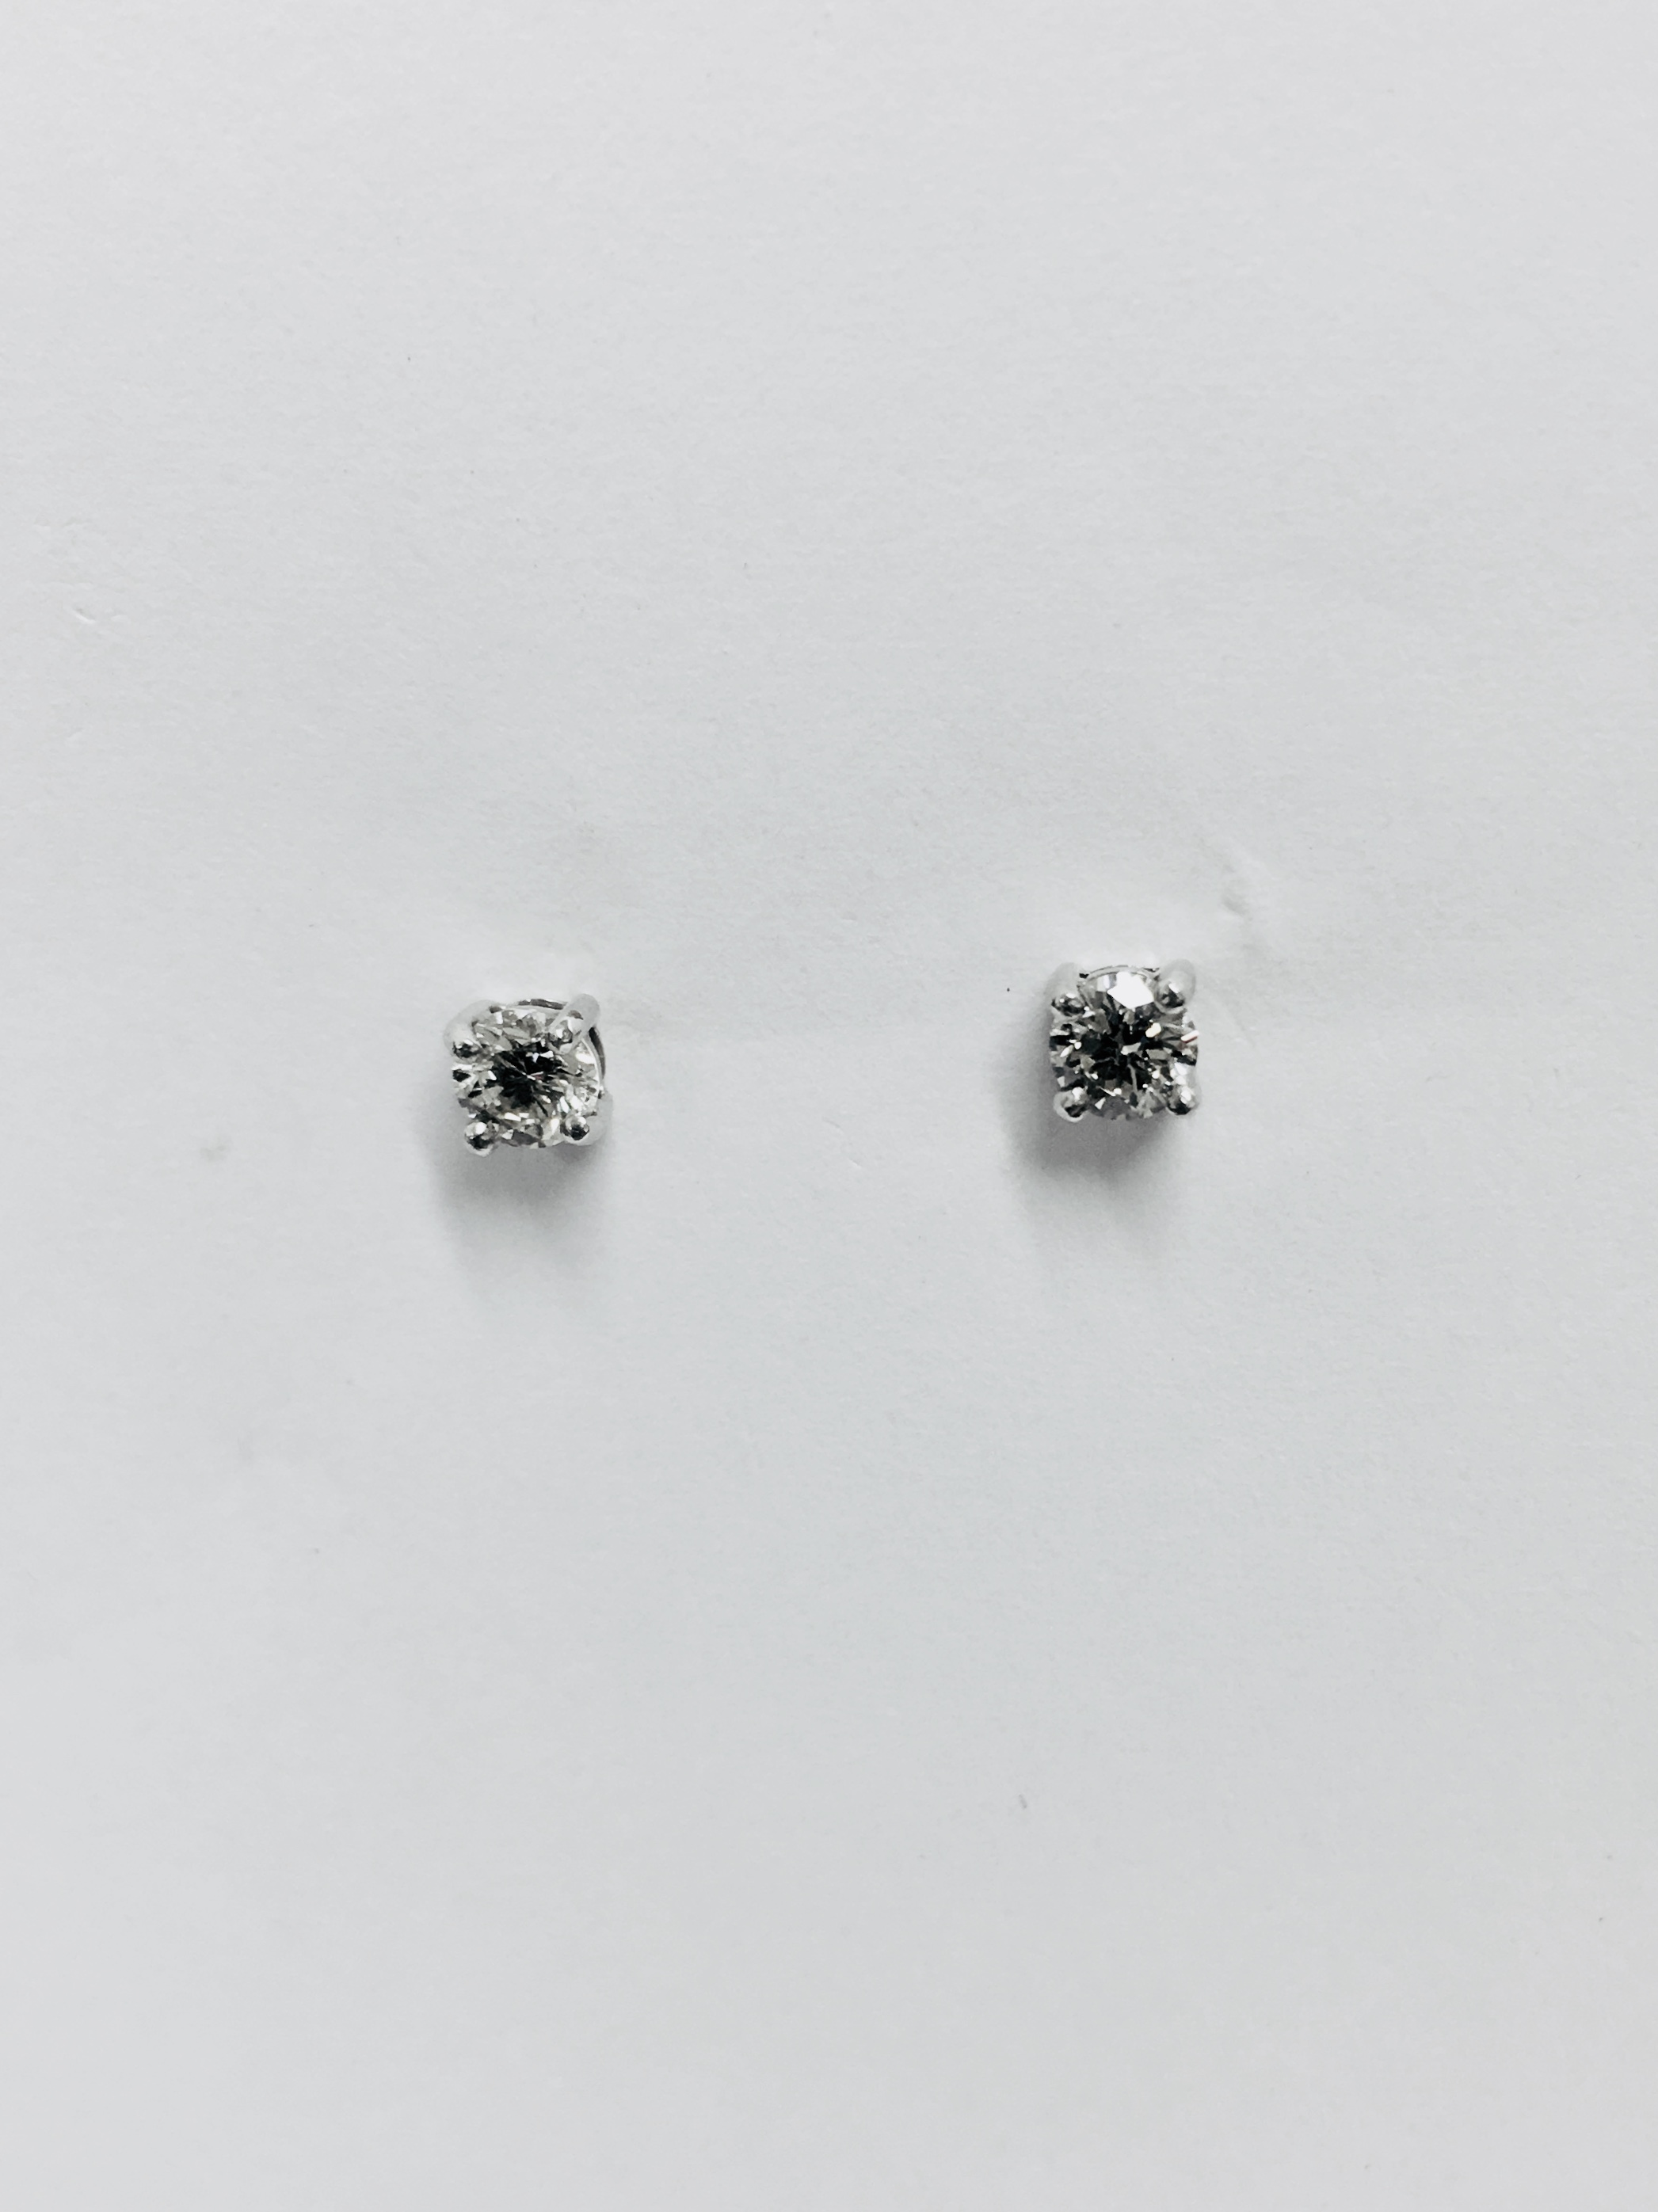 stud earrings tw diamonds of center pair strip jewelry days grants solitaire gold white product diamond